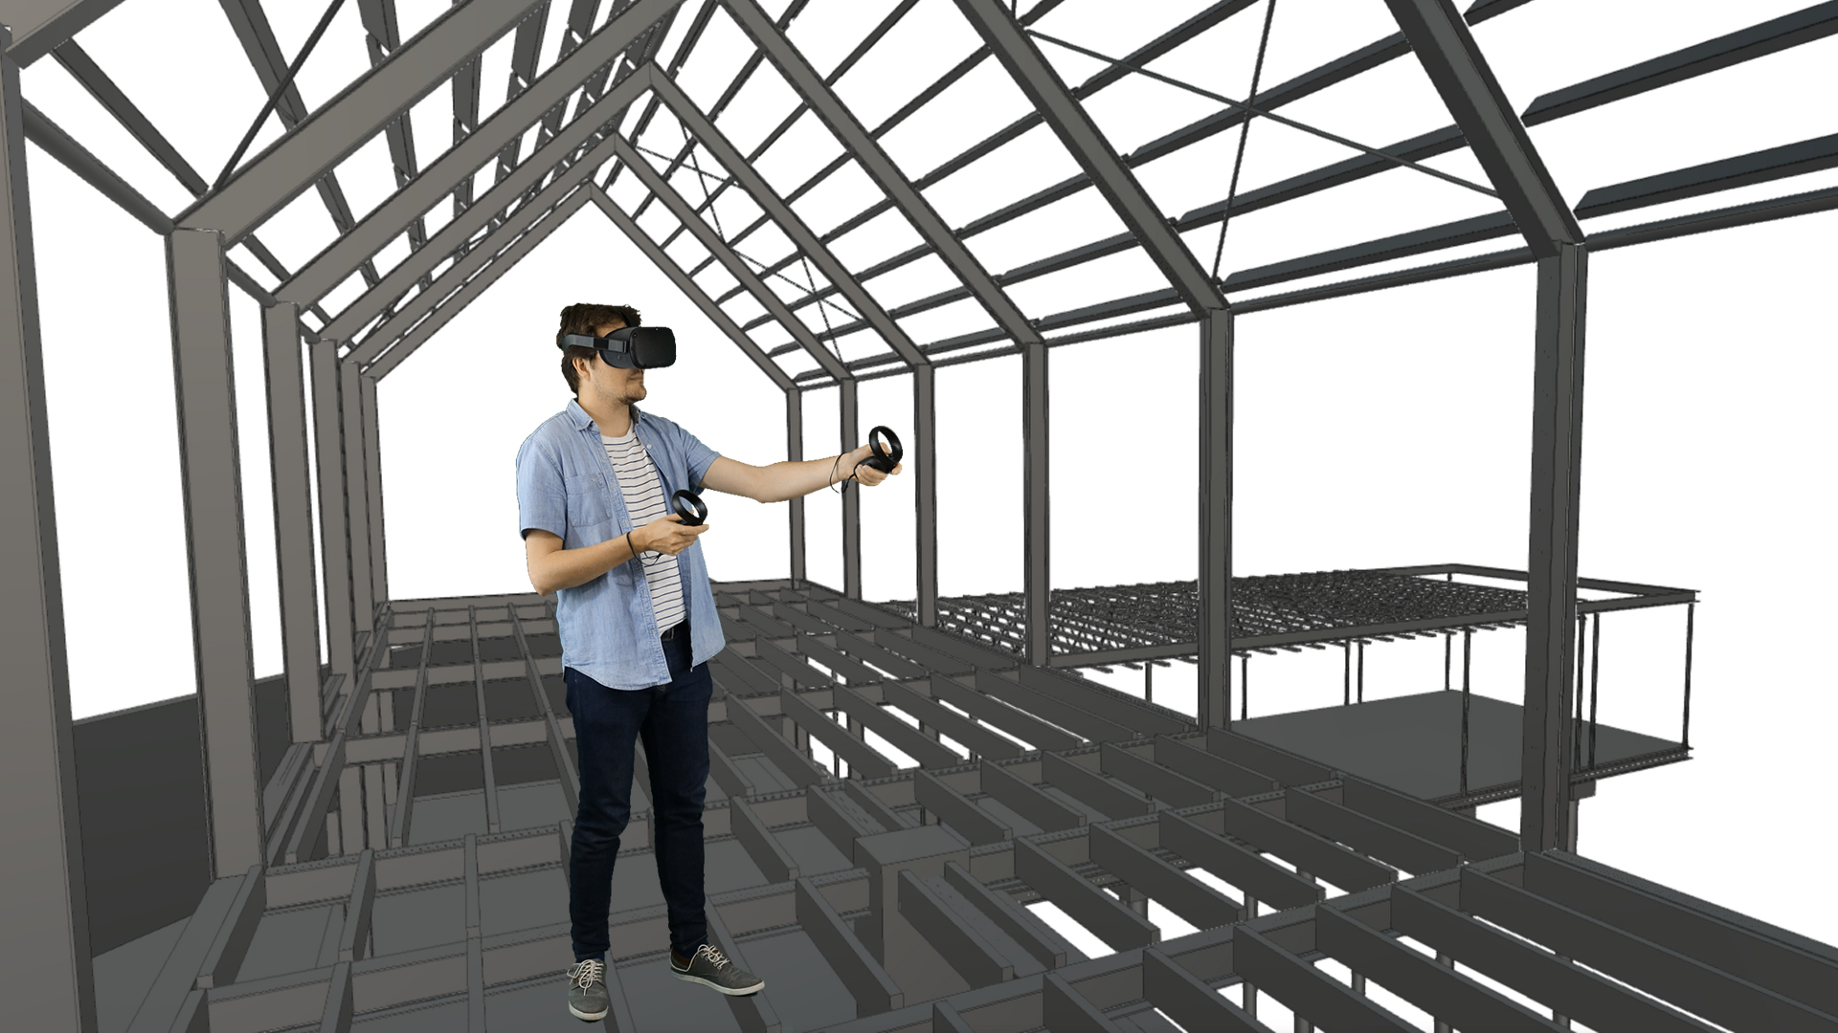 Oculus Quest First Impressions from 5 Architecture & Construction Pros